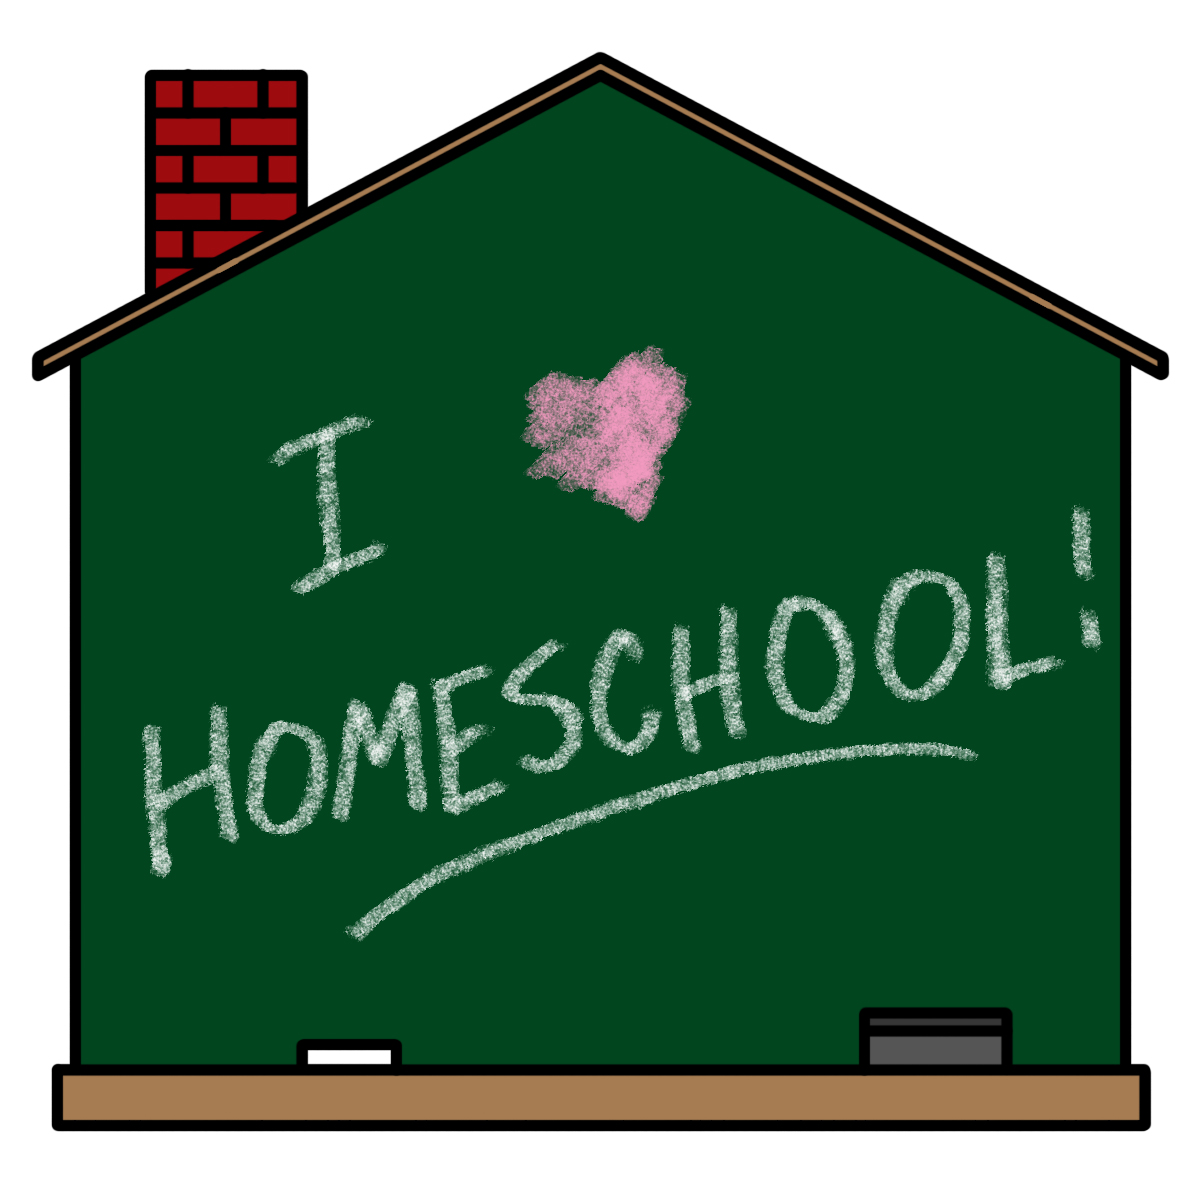 Chalkboard with I love homeschool written on it.